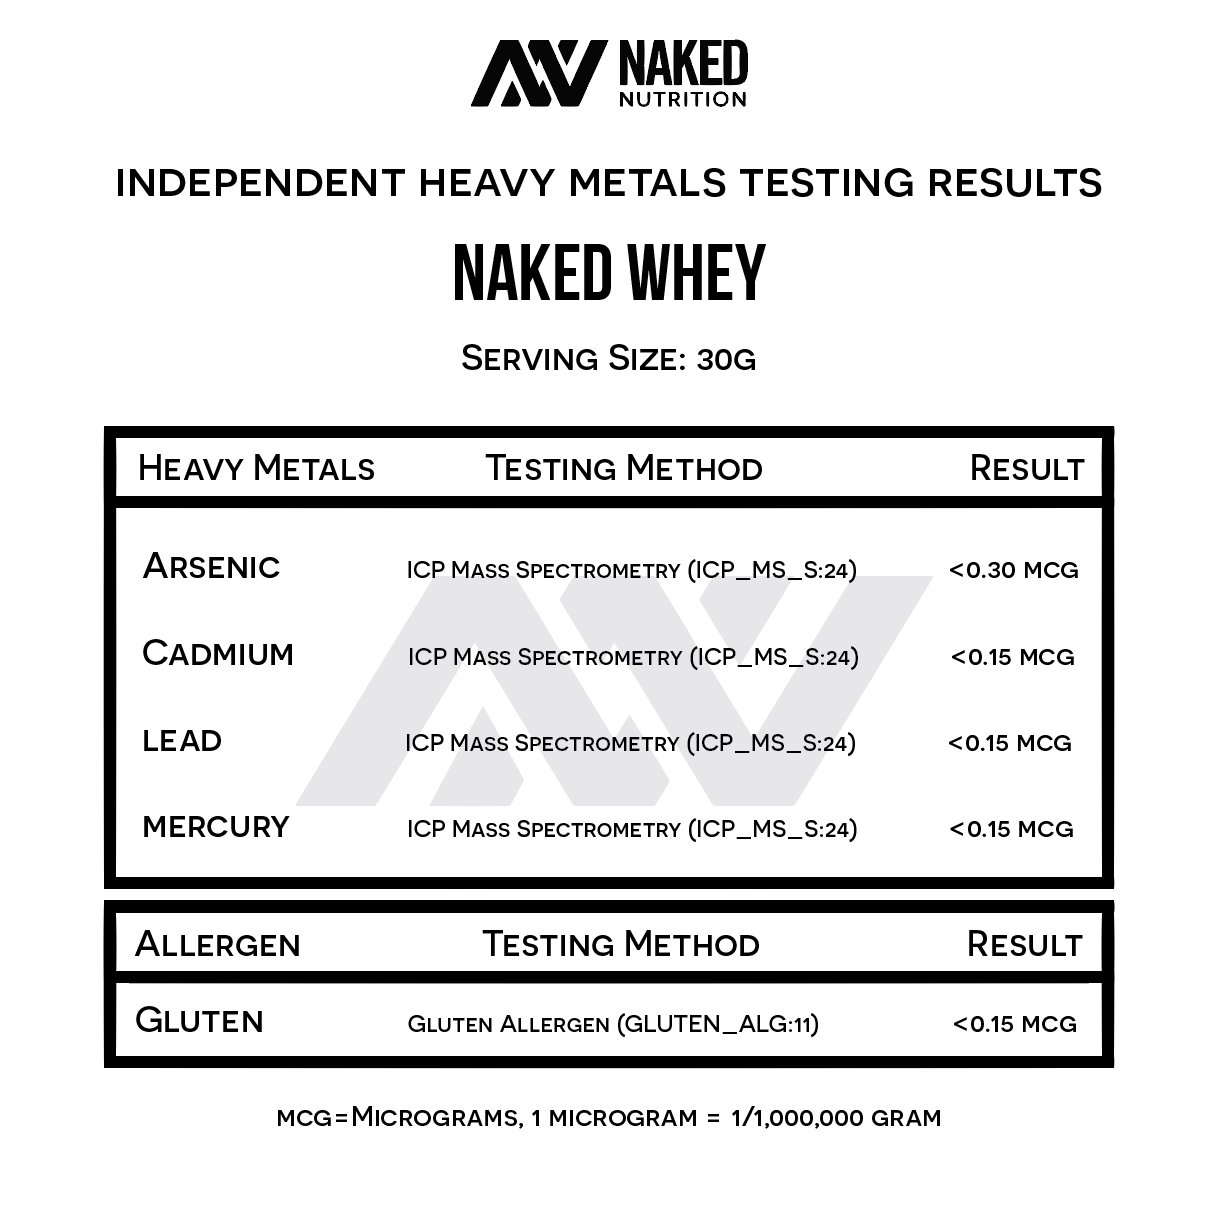 Naked WHEY 1LB 100% Grass Fed Unflavored Whey Protein Powder - US Farms, Only 1 Ingredient, Undenatured - No GMO, Soy or Gluten - No Preservatives - Promote Muscle Growth and Recovery - 15 Servings by NAKED nutrition (Image #7)